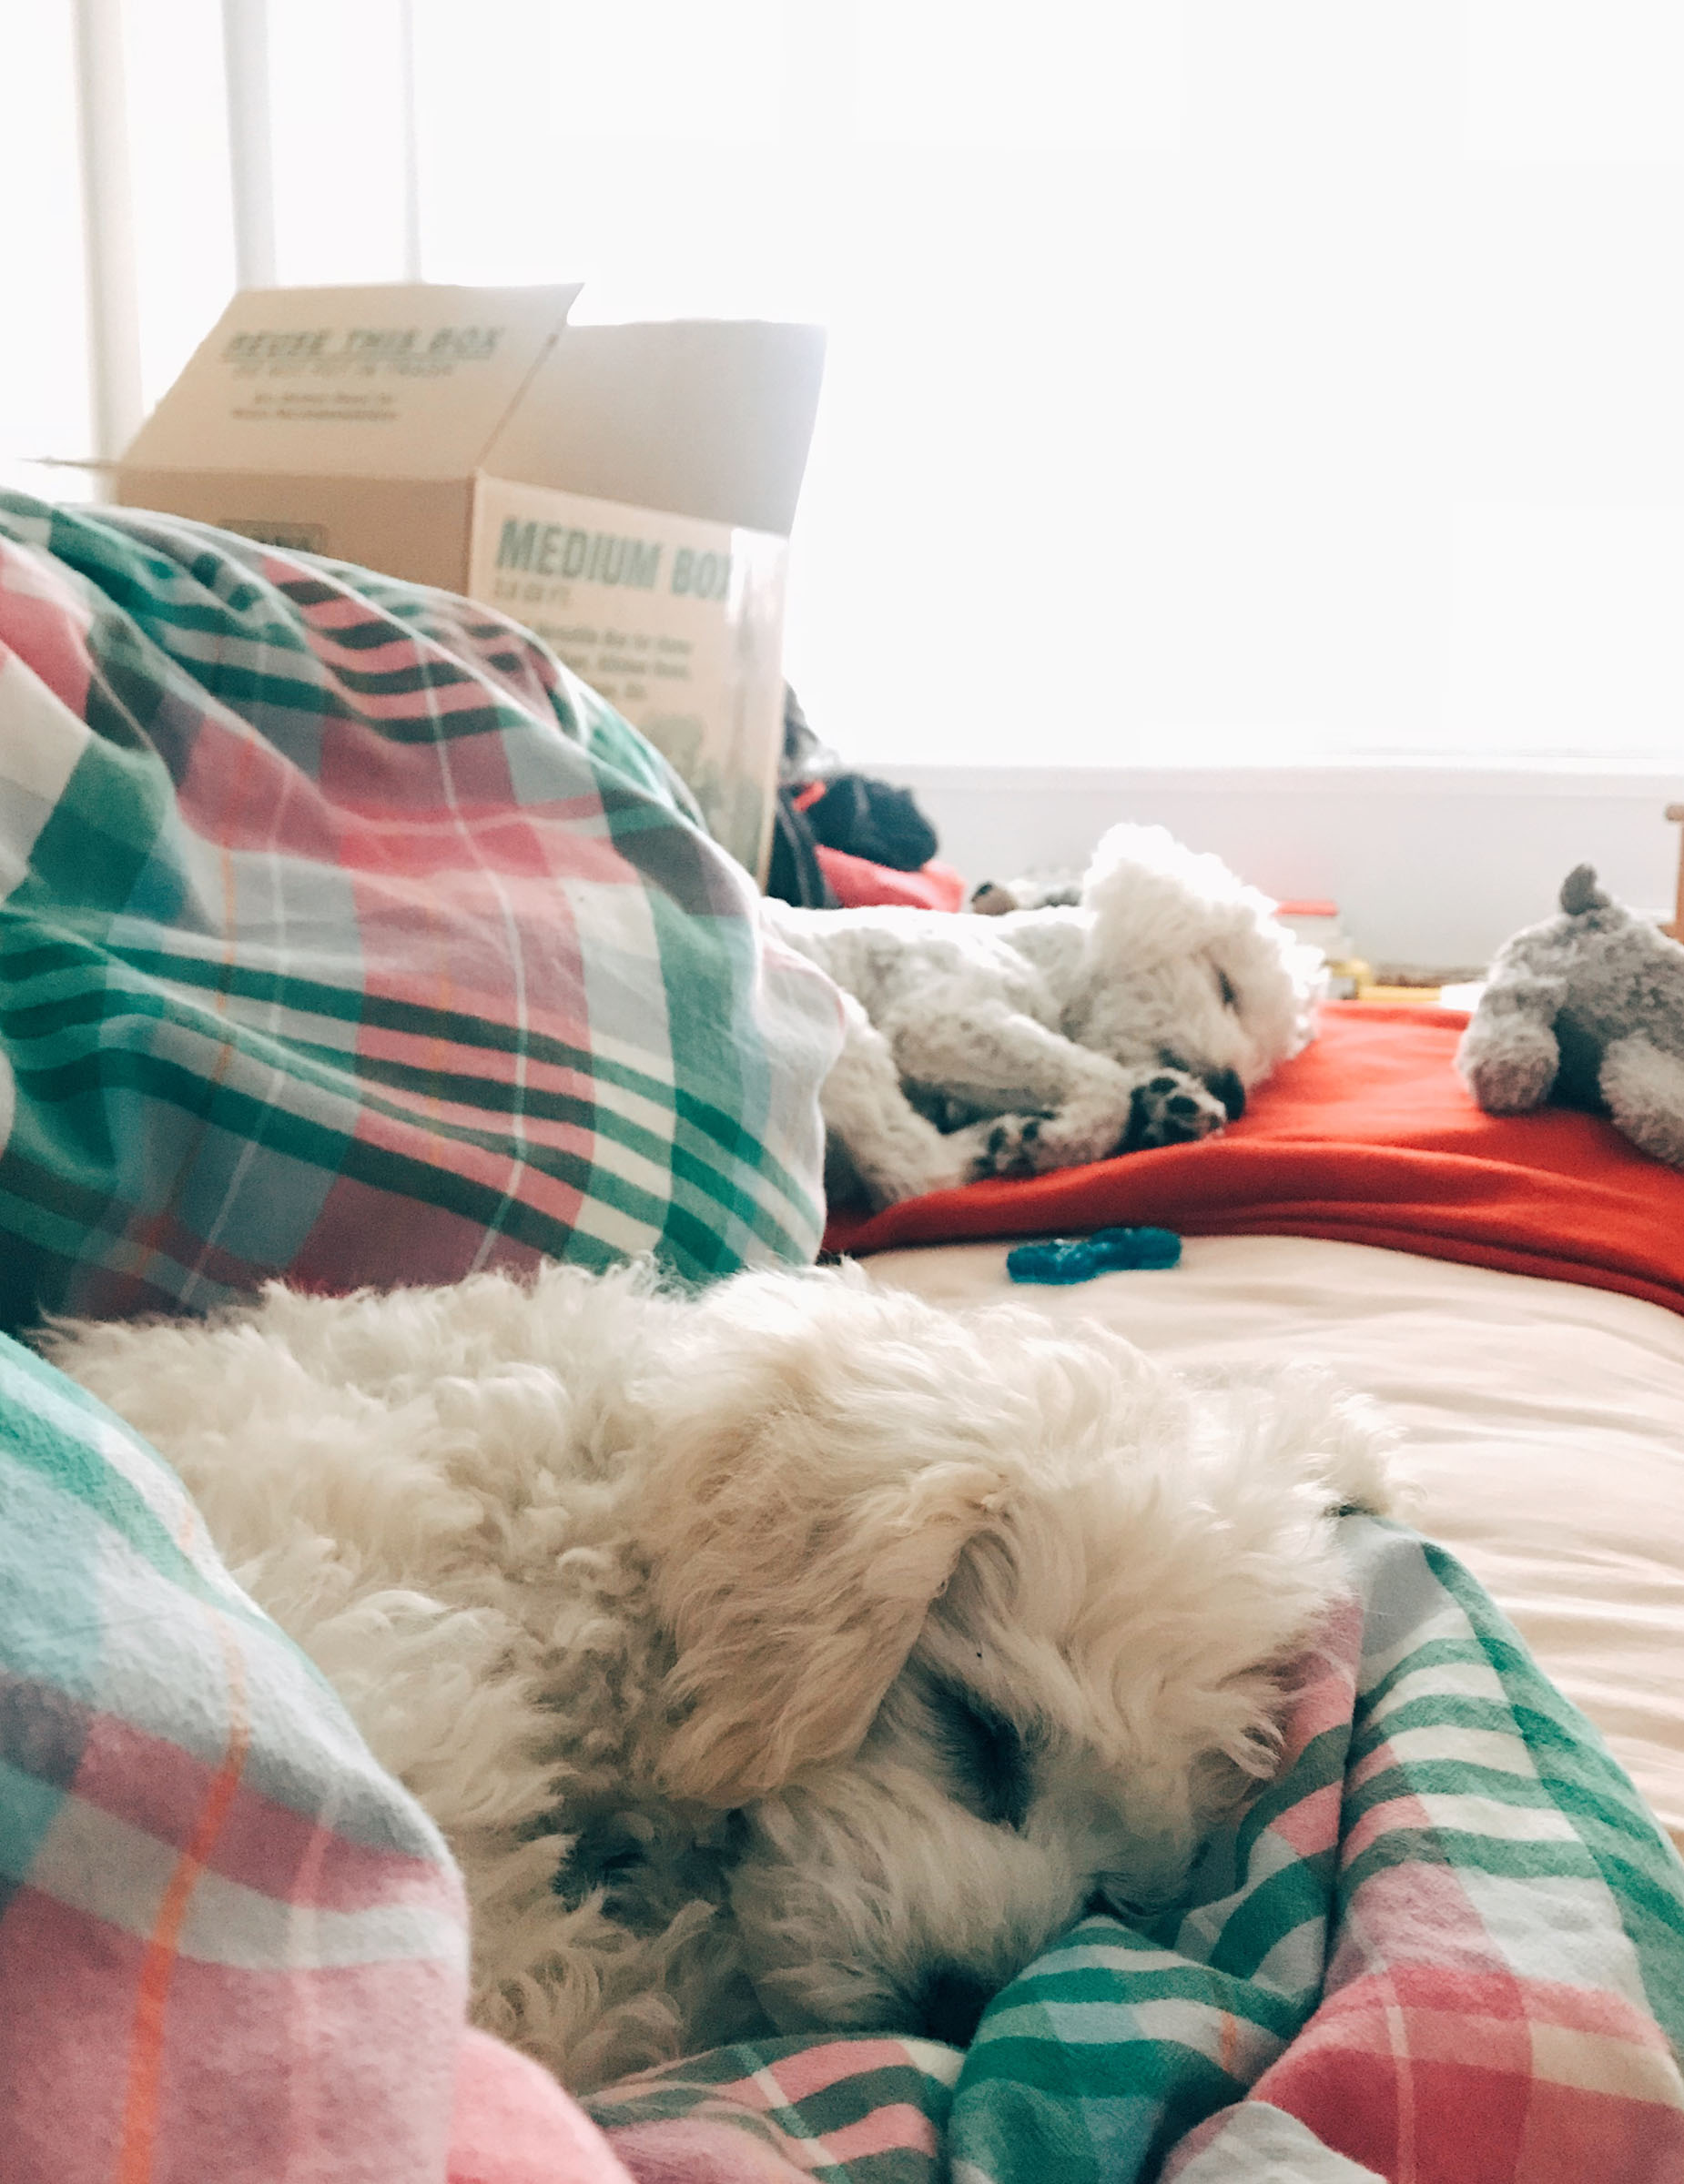 PUPPIES-SLEEPING-BED.jpg